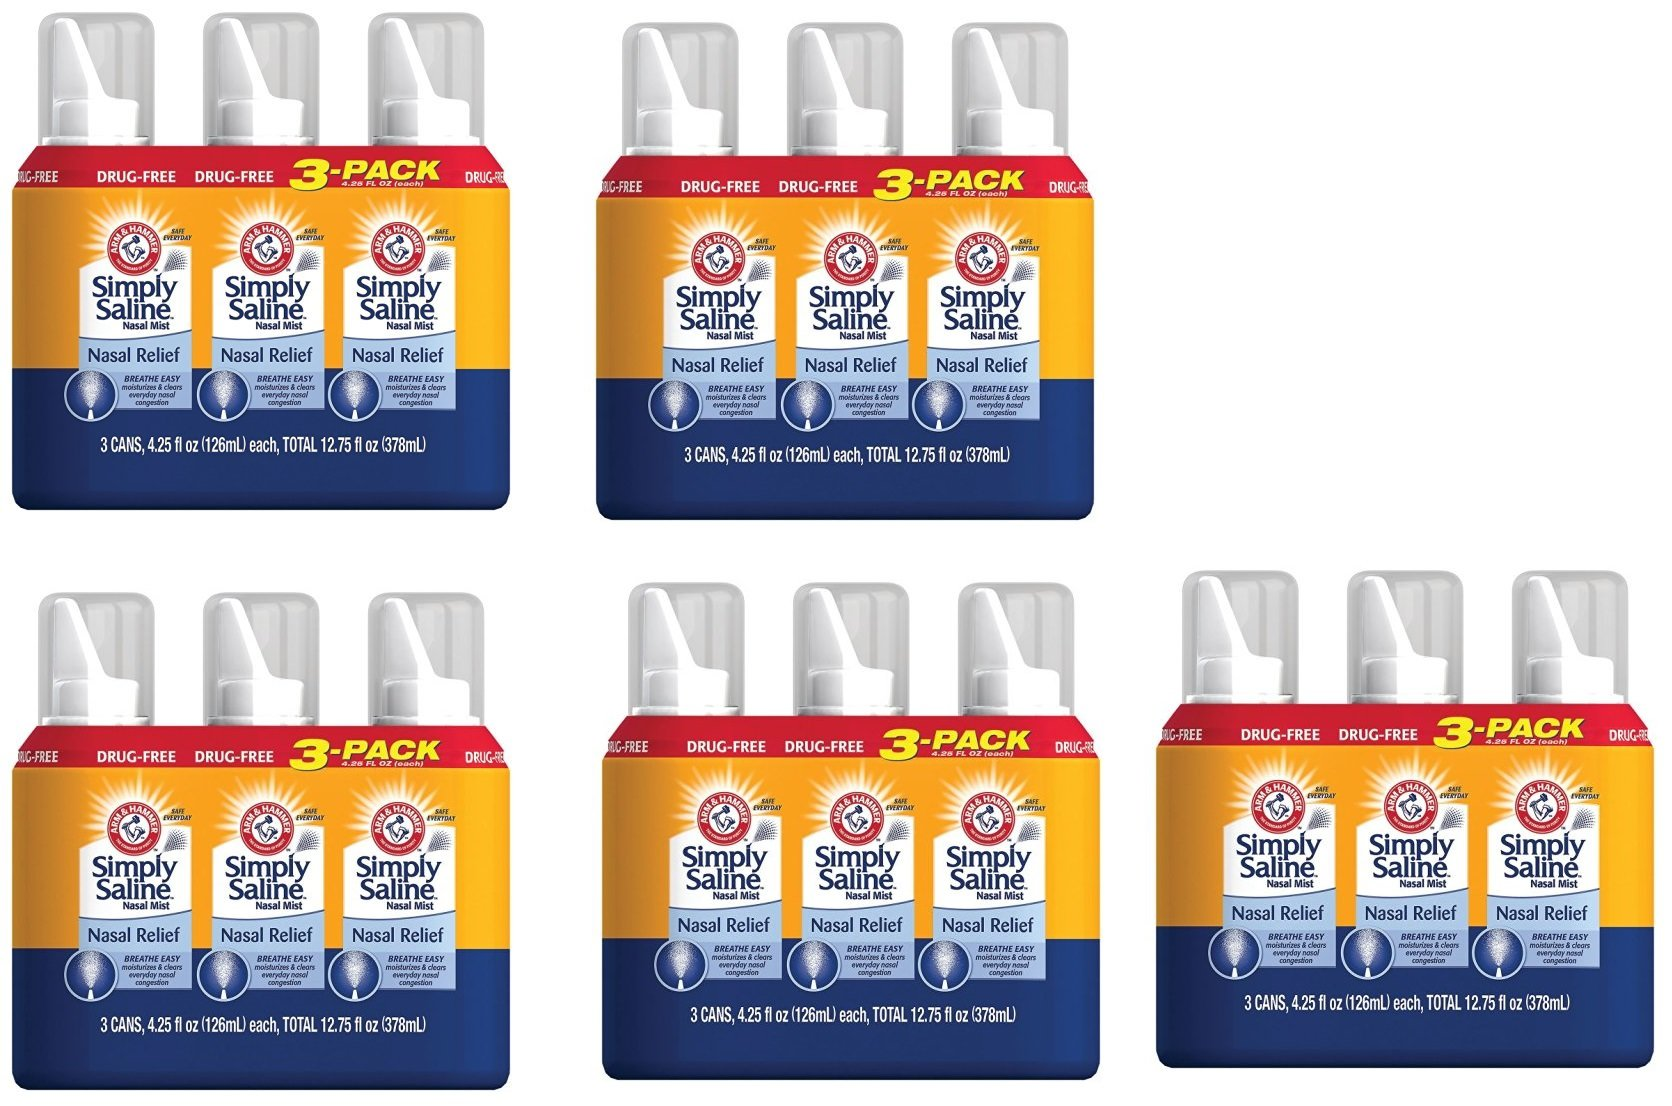 Arm & Hammer ylZcOX Simply Saline Nasal Relief, 4.25 oz, 15 Pack by Arm & Hammer